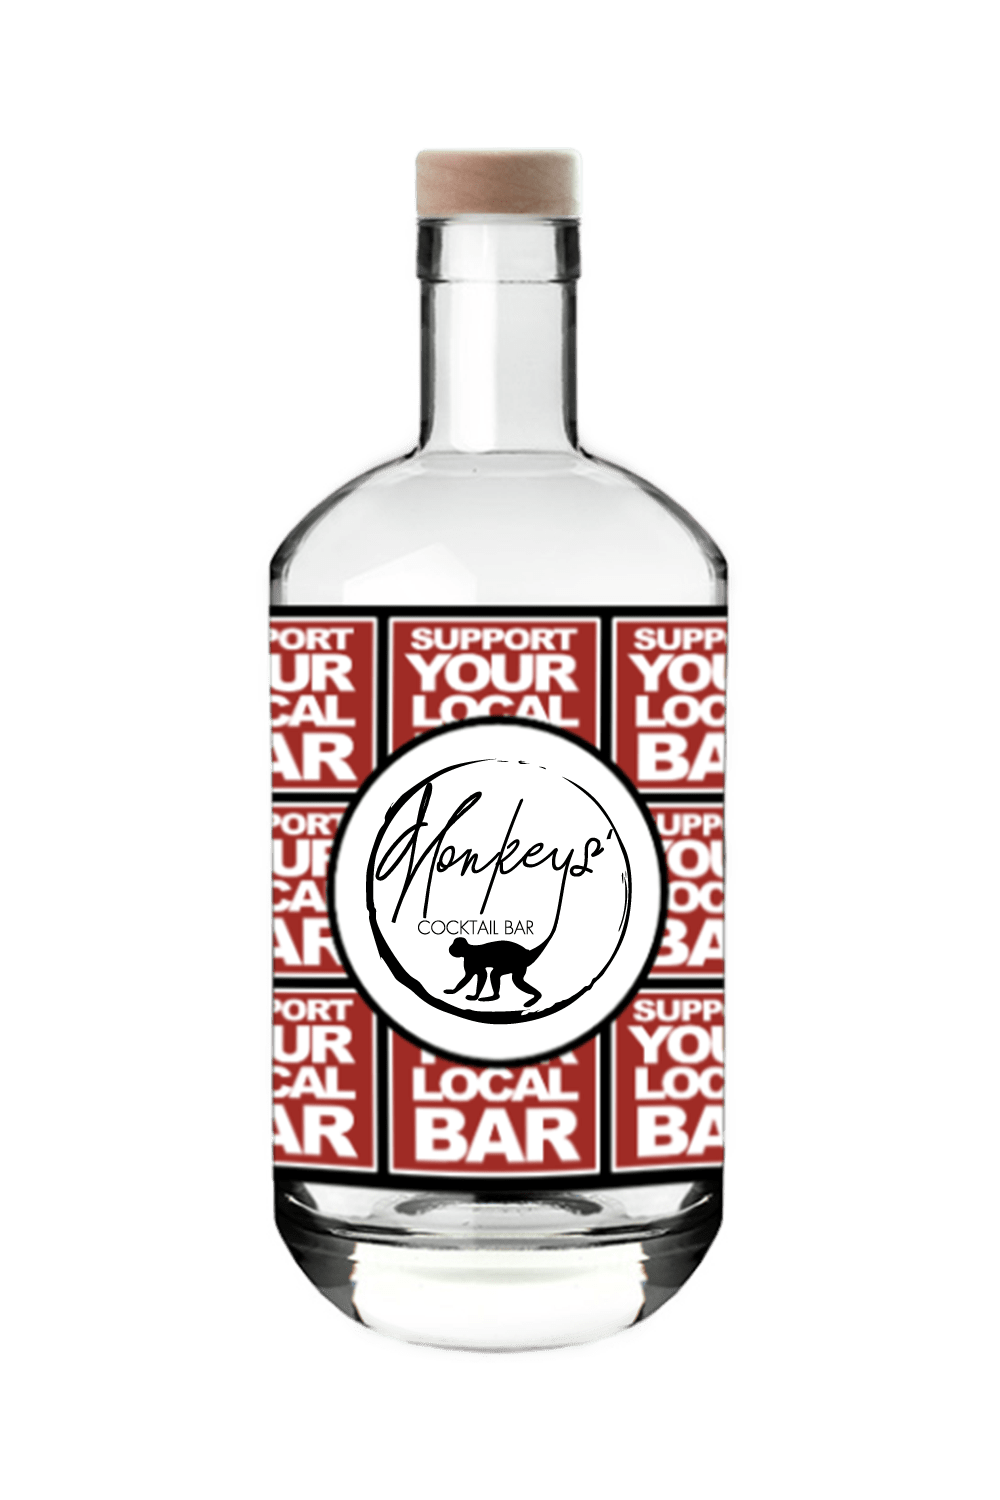 Gingerbread Gin Monkeys'Bar Imperia